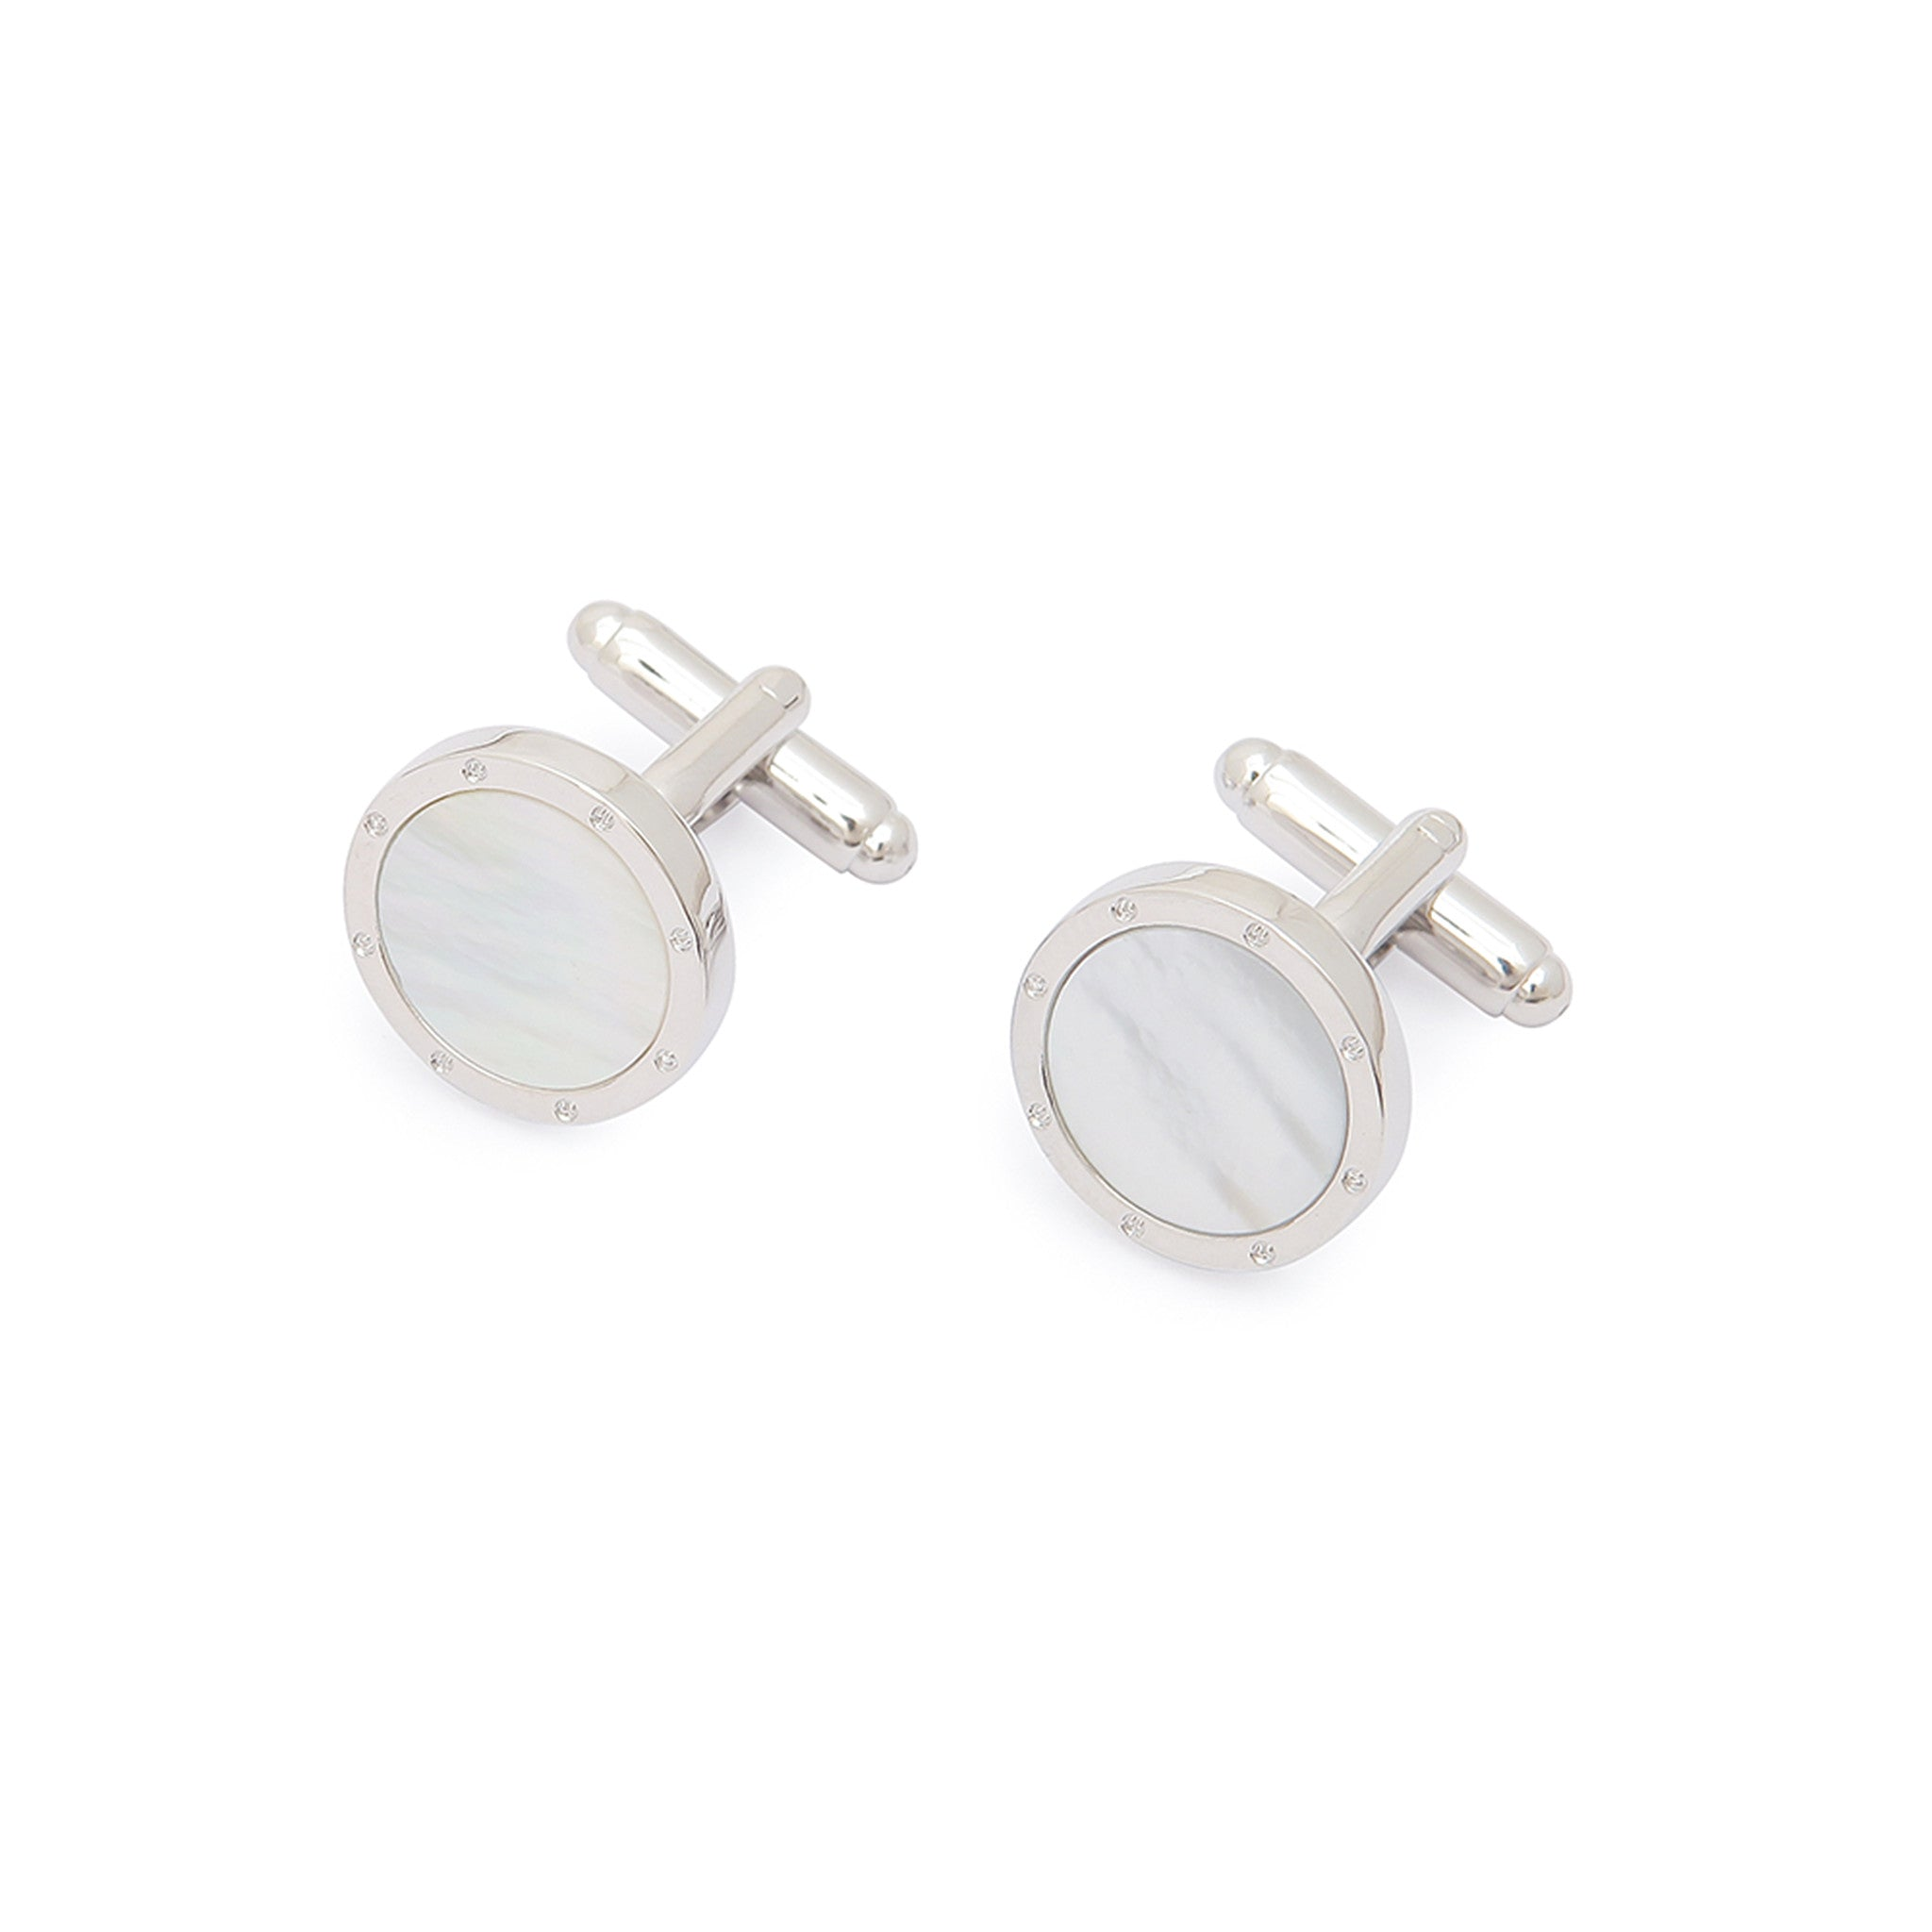 Steel Quartz Cufflinks